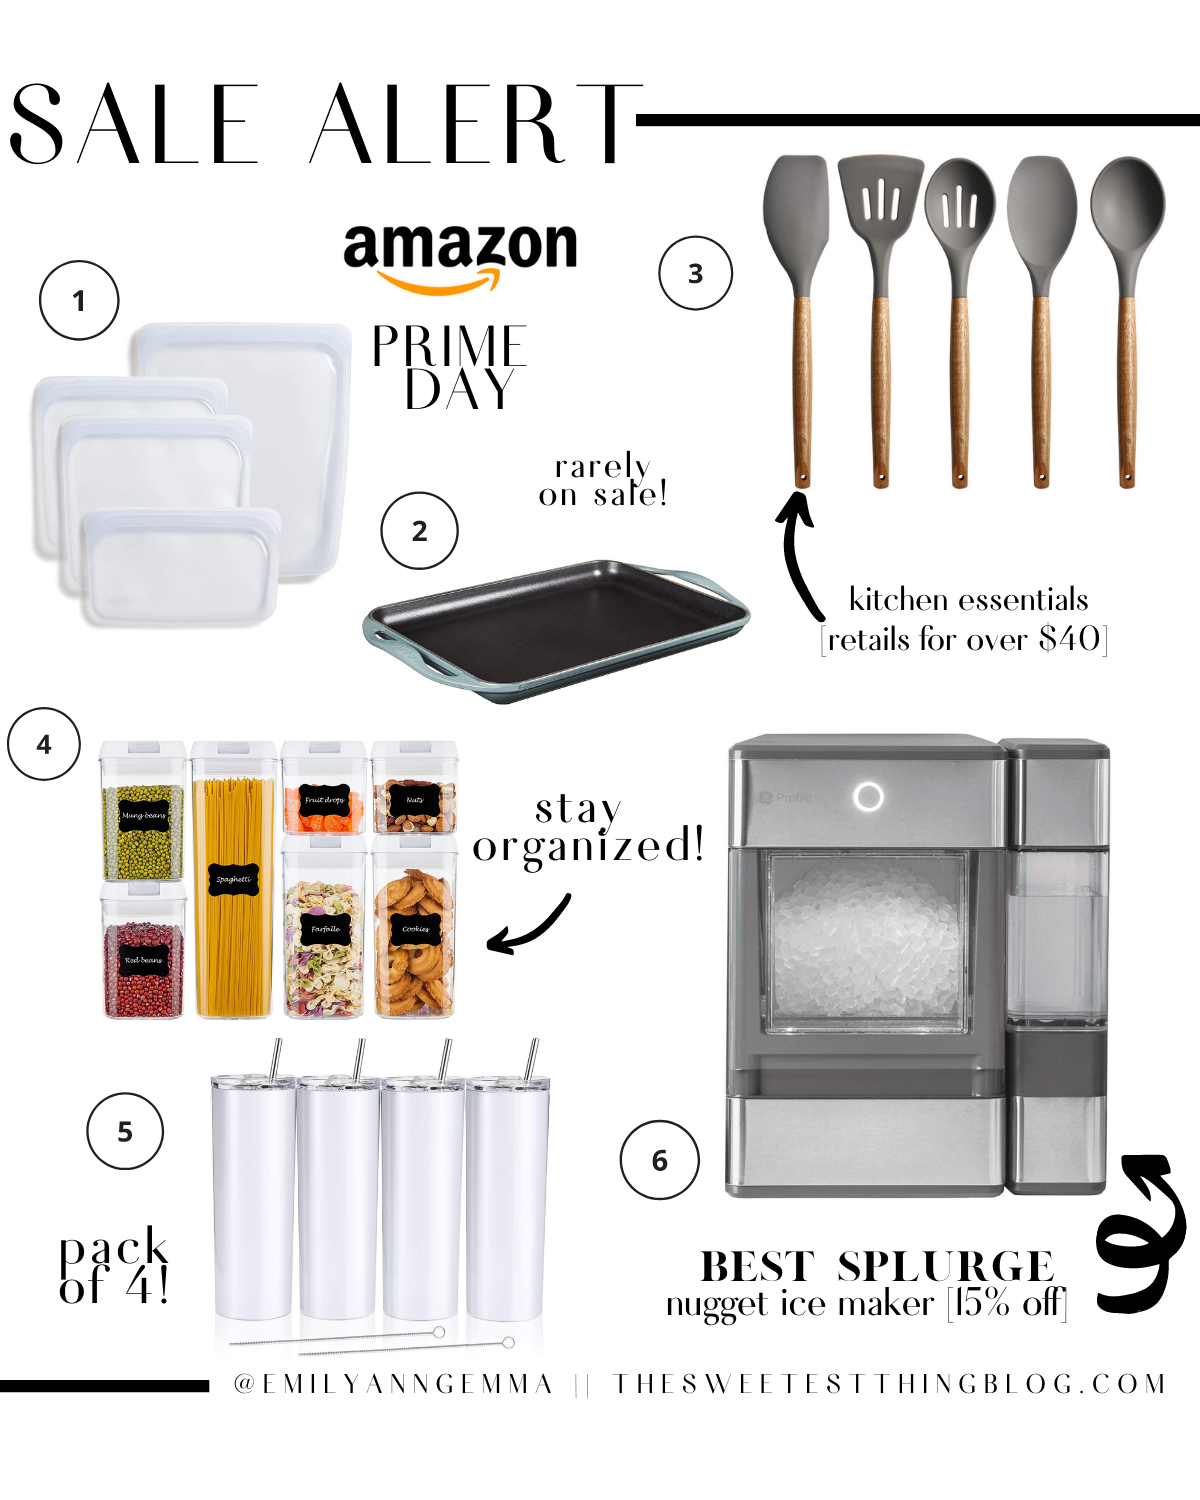 Prime Day by popular US life and style blog, The Sweetest Thing: collage image of a pebble ice machine, acrylic storage containers, kitchen utensils, Le Creuset cooking griddle, Stasher food bags, and insulated stainless steel tumblers.